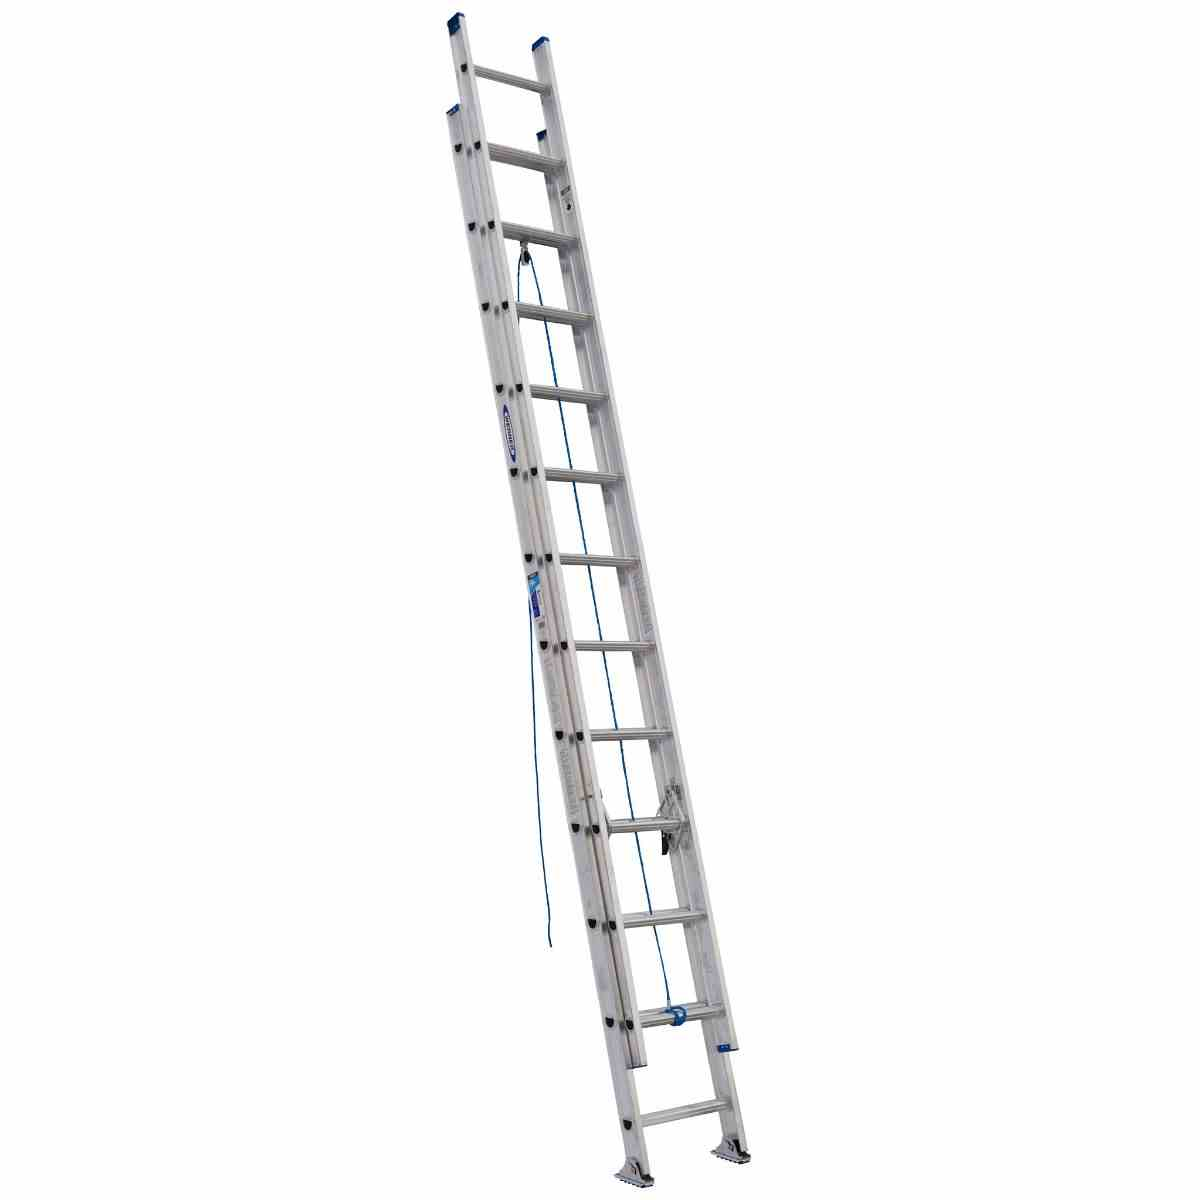 EXT LADDER - 24' 250# TYPE I ALUMINUM - HOME IMPROVEMENT OUTLET